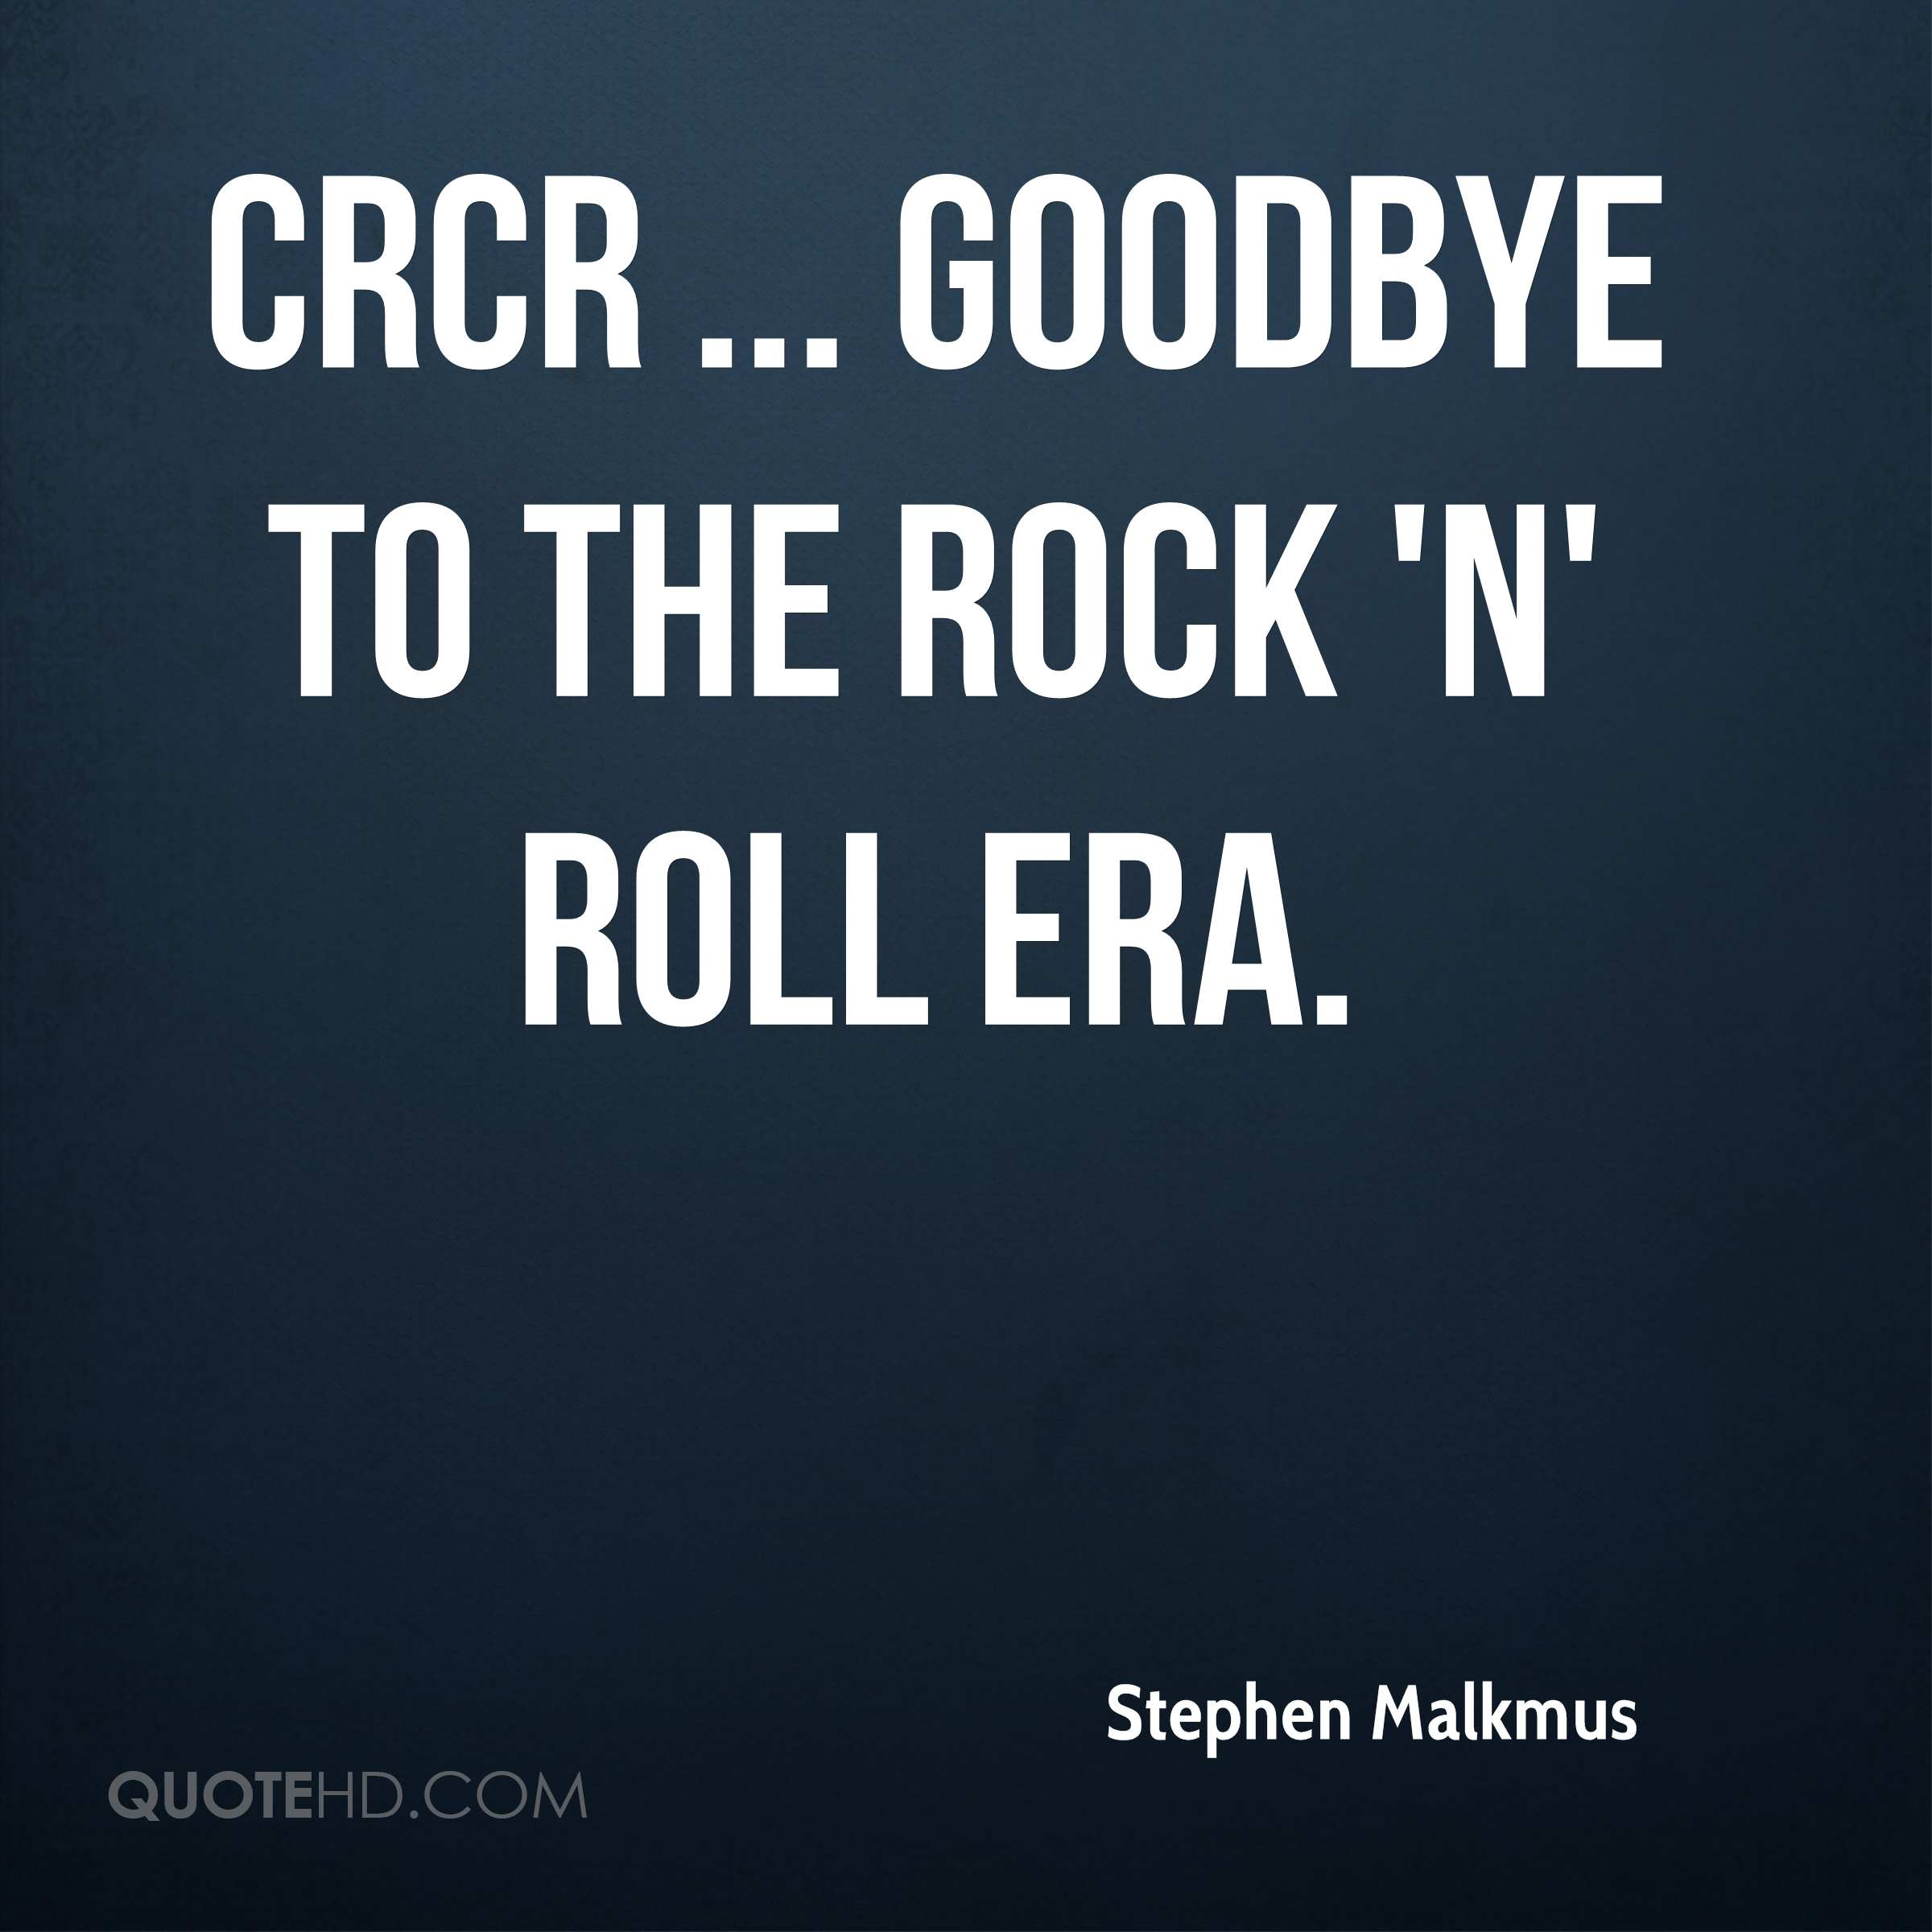 CRCR ... goodbye to the rock 'n' roll era.